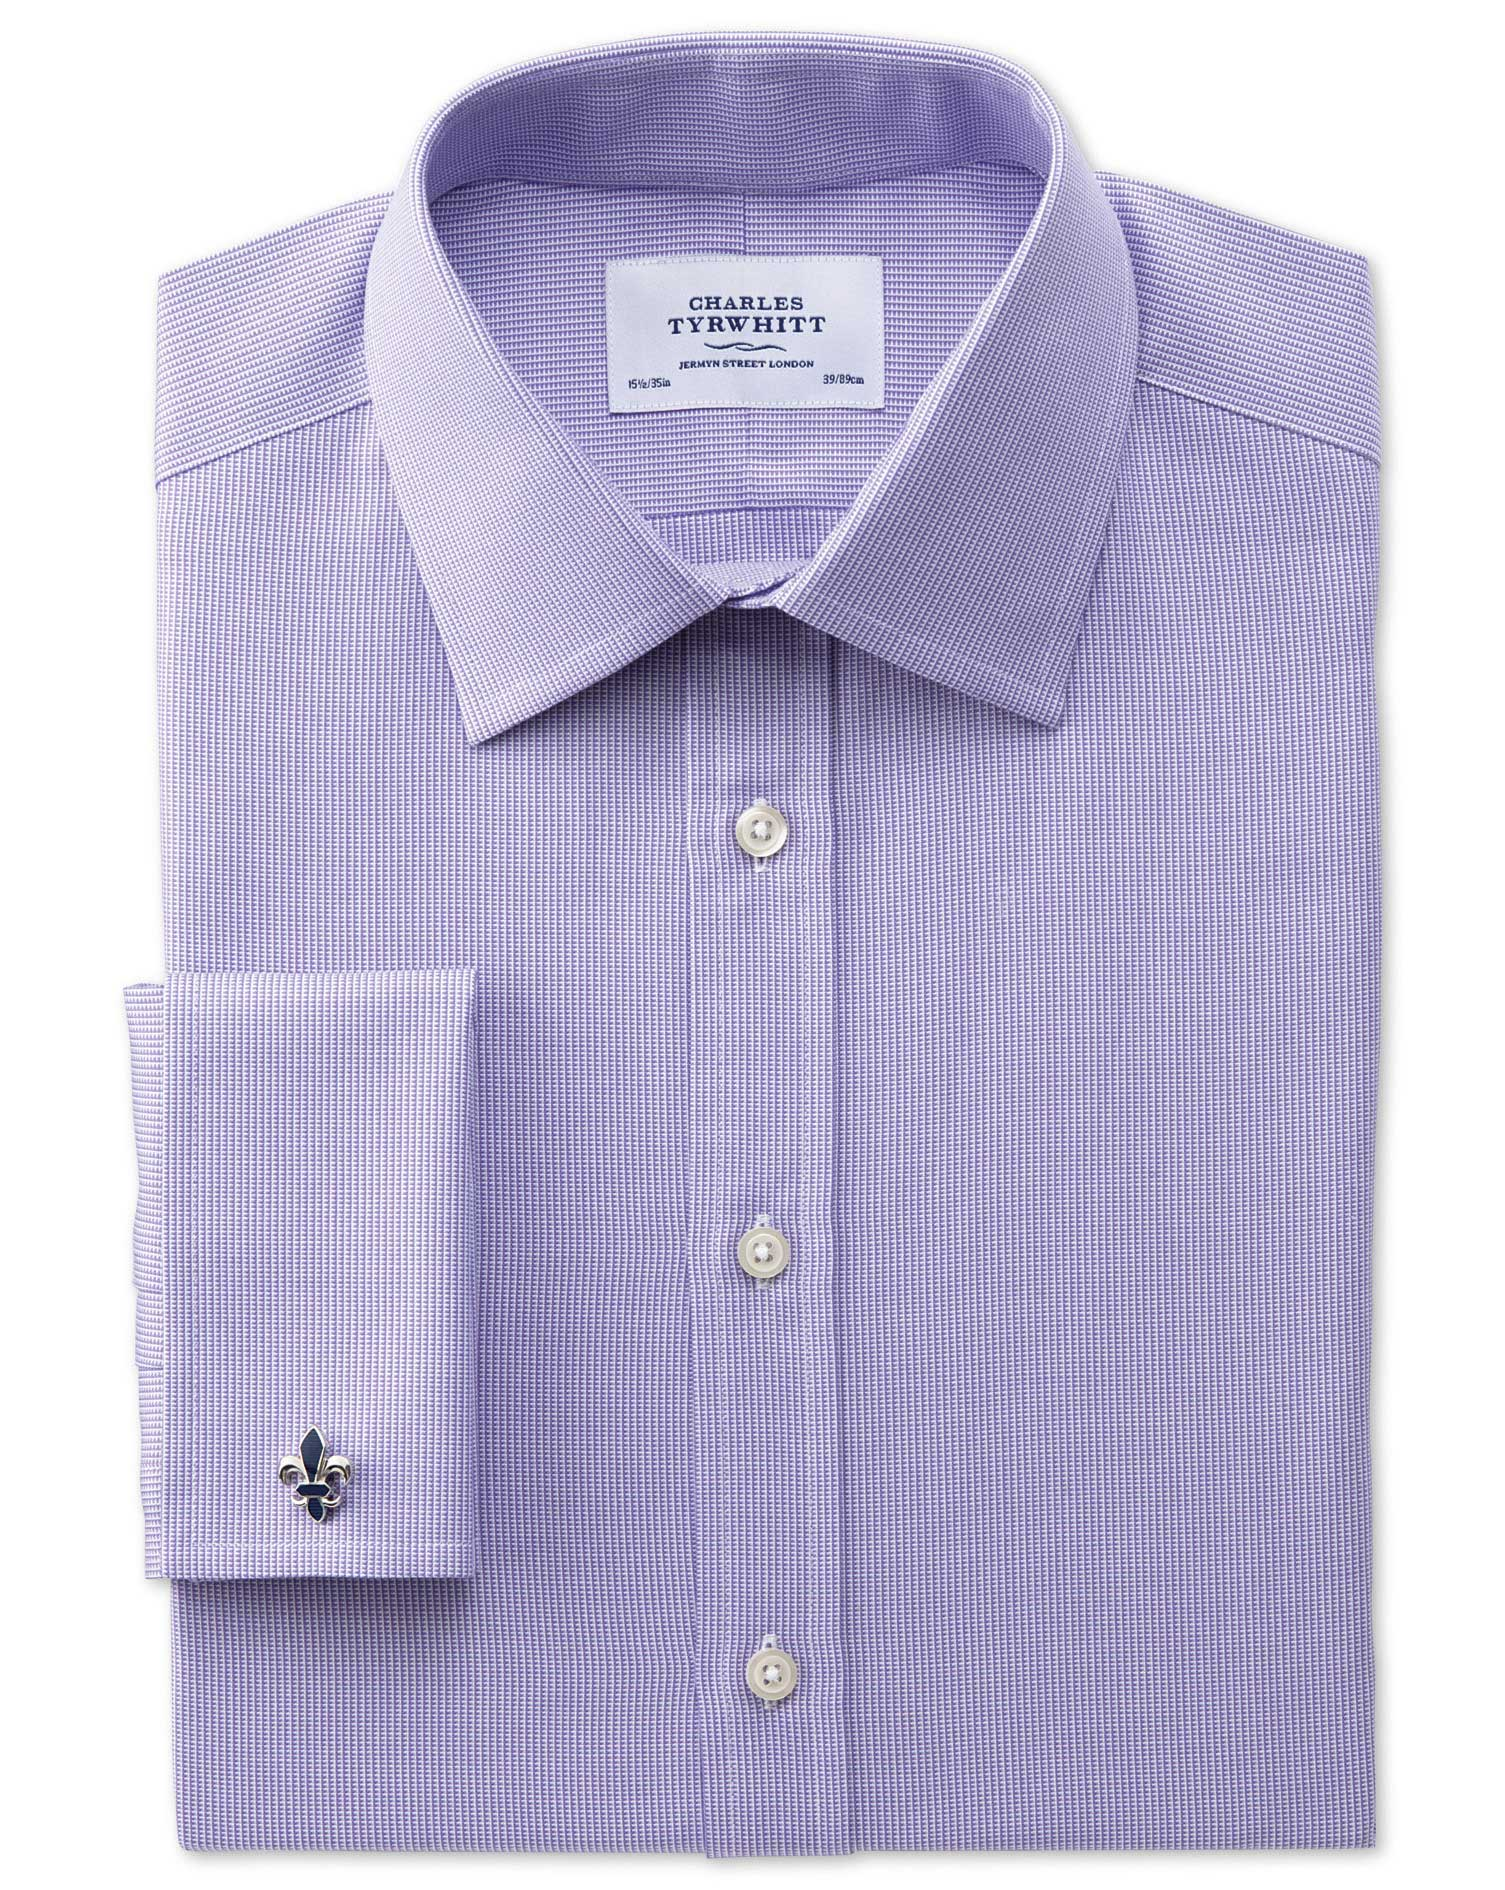 Extra Slim Fit Oxford Lilac Cotton Formal Shirt Single Cuff Size 16/38 by Charles Tyrwhitt